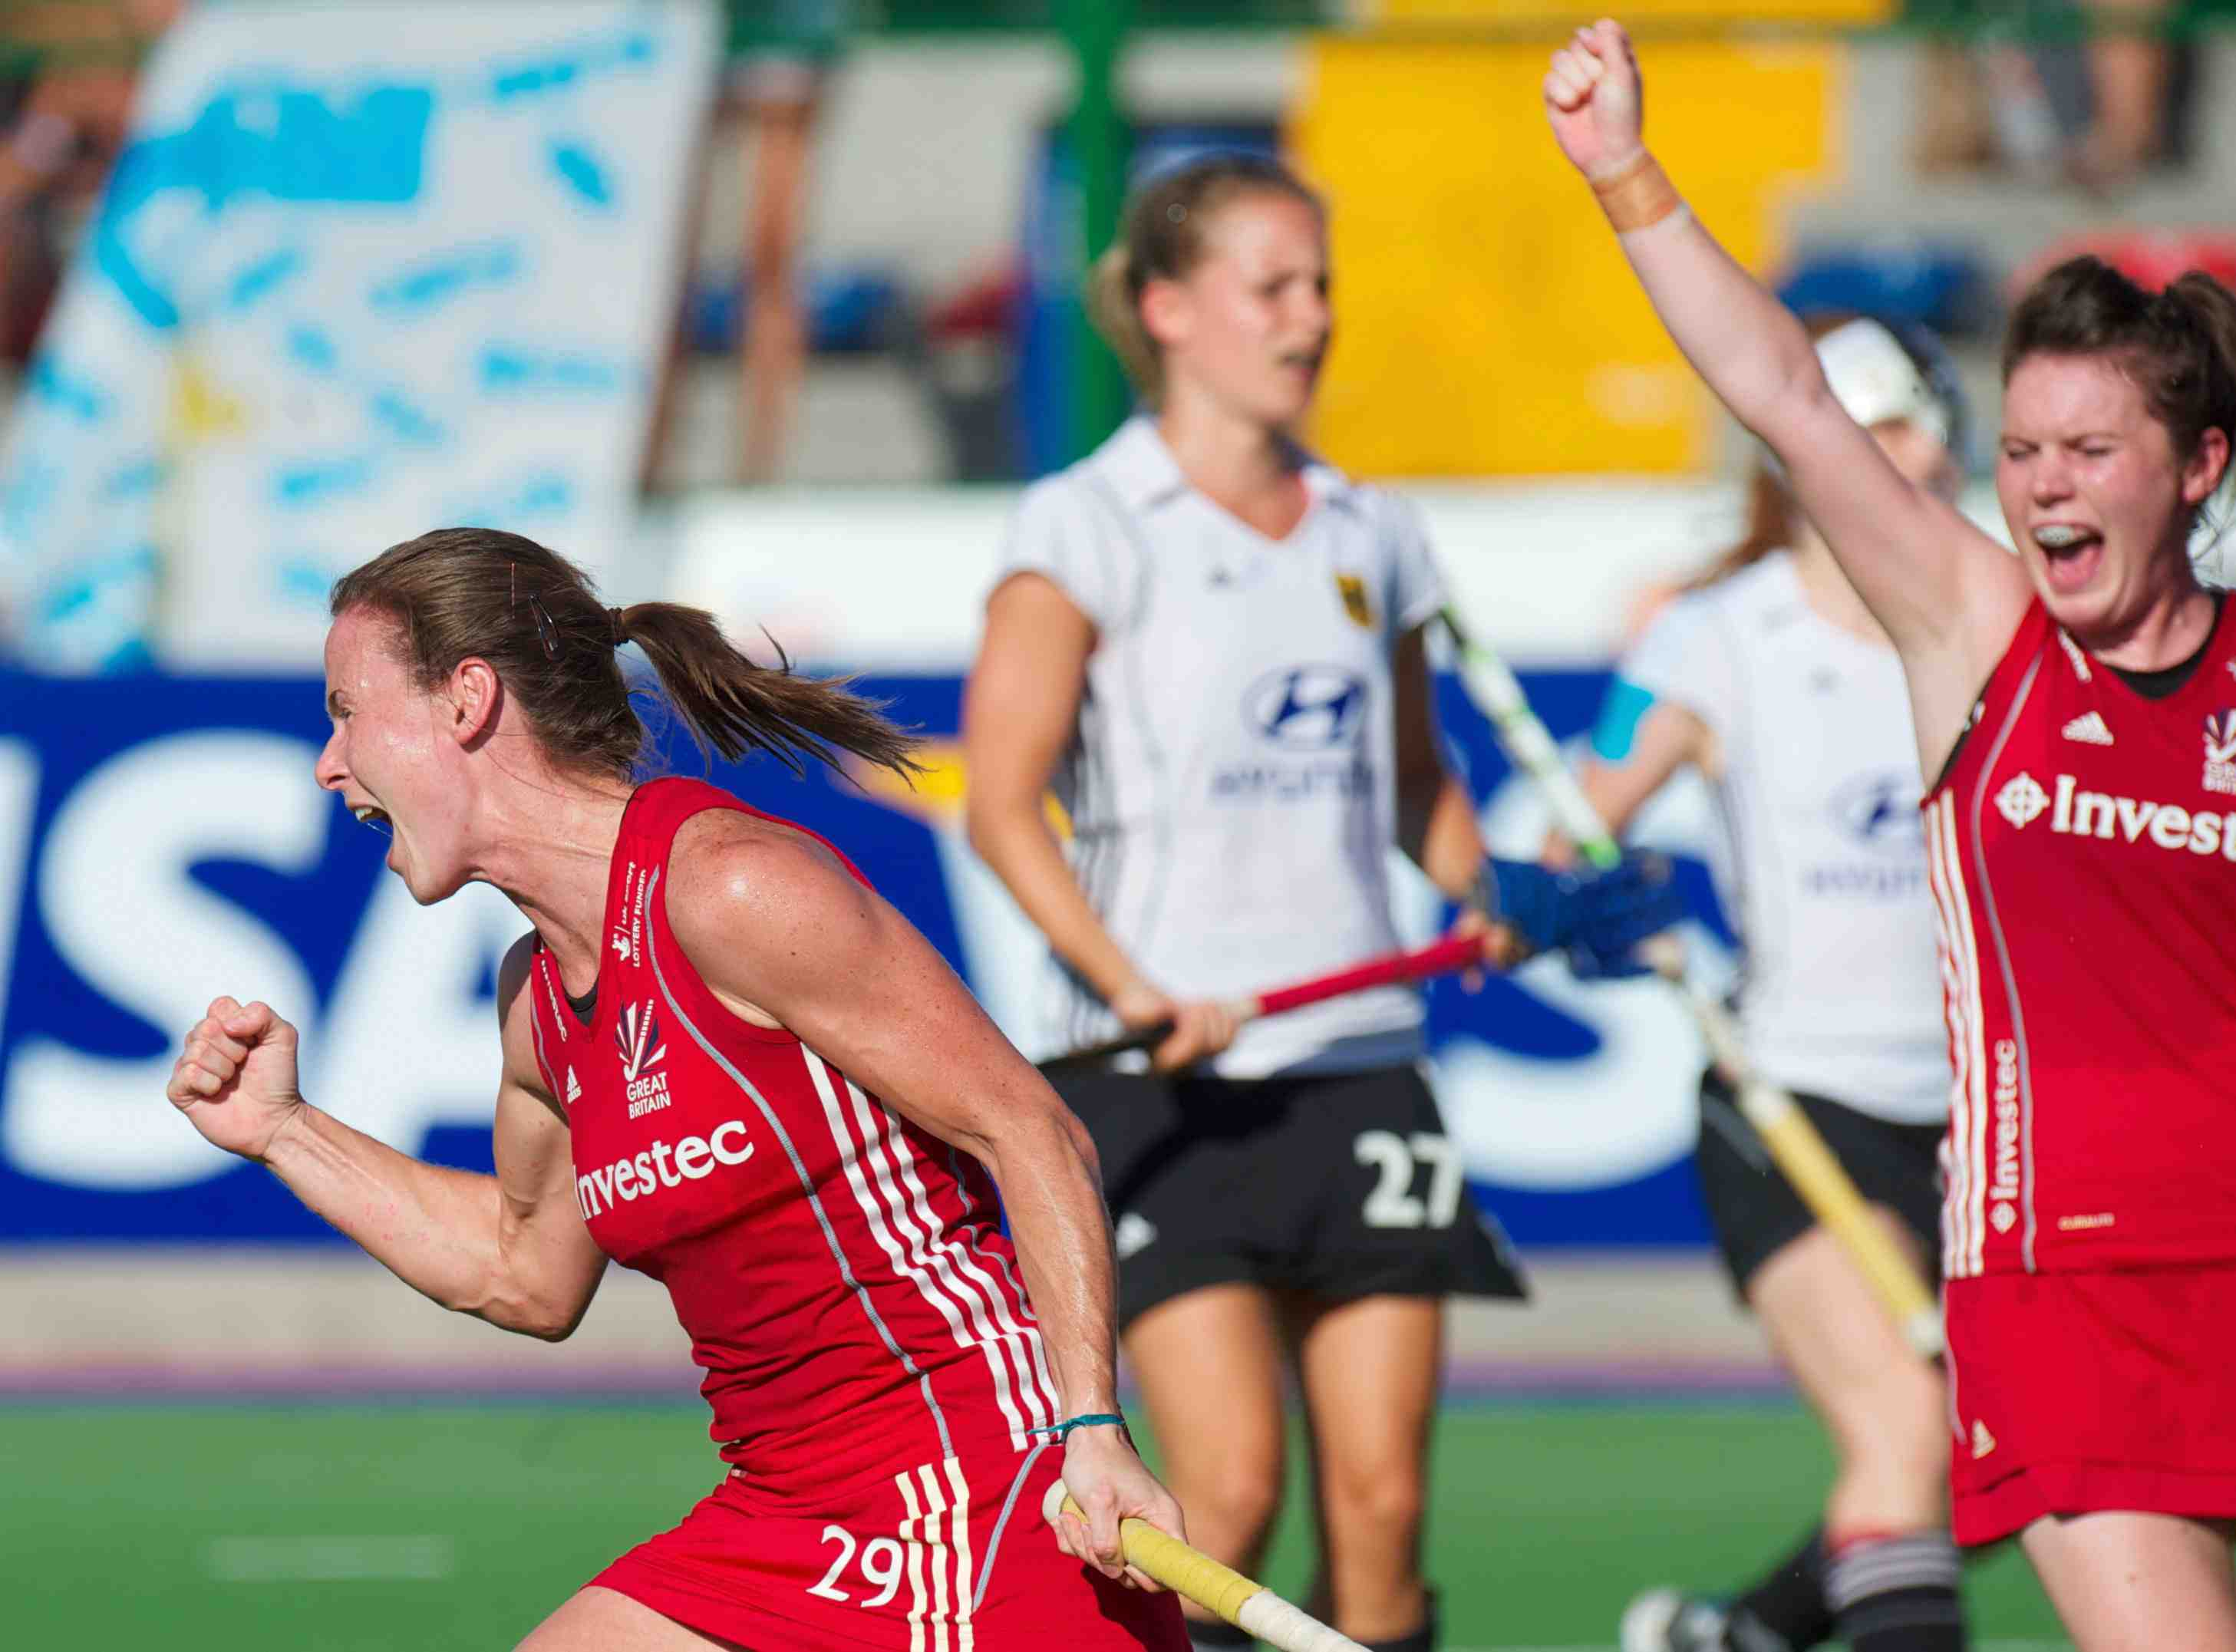 BGwomenhockeyplayers 5Feb